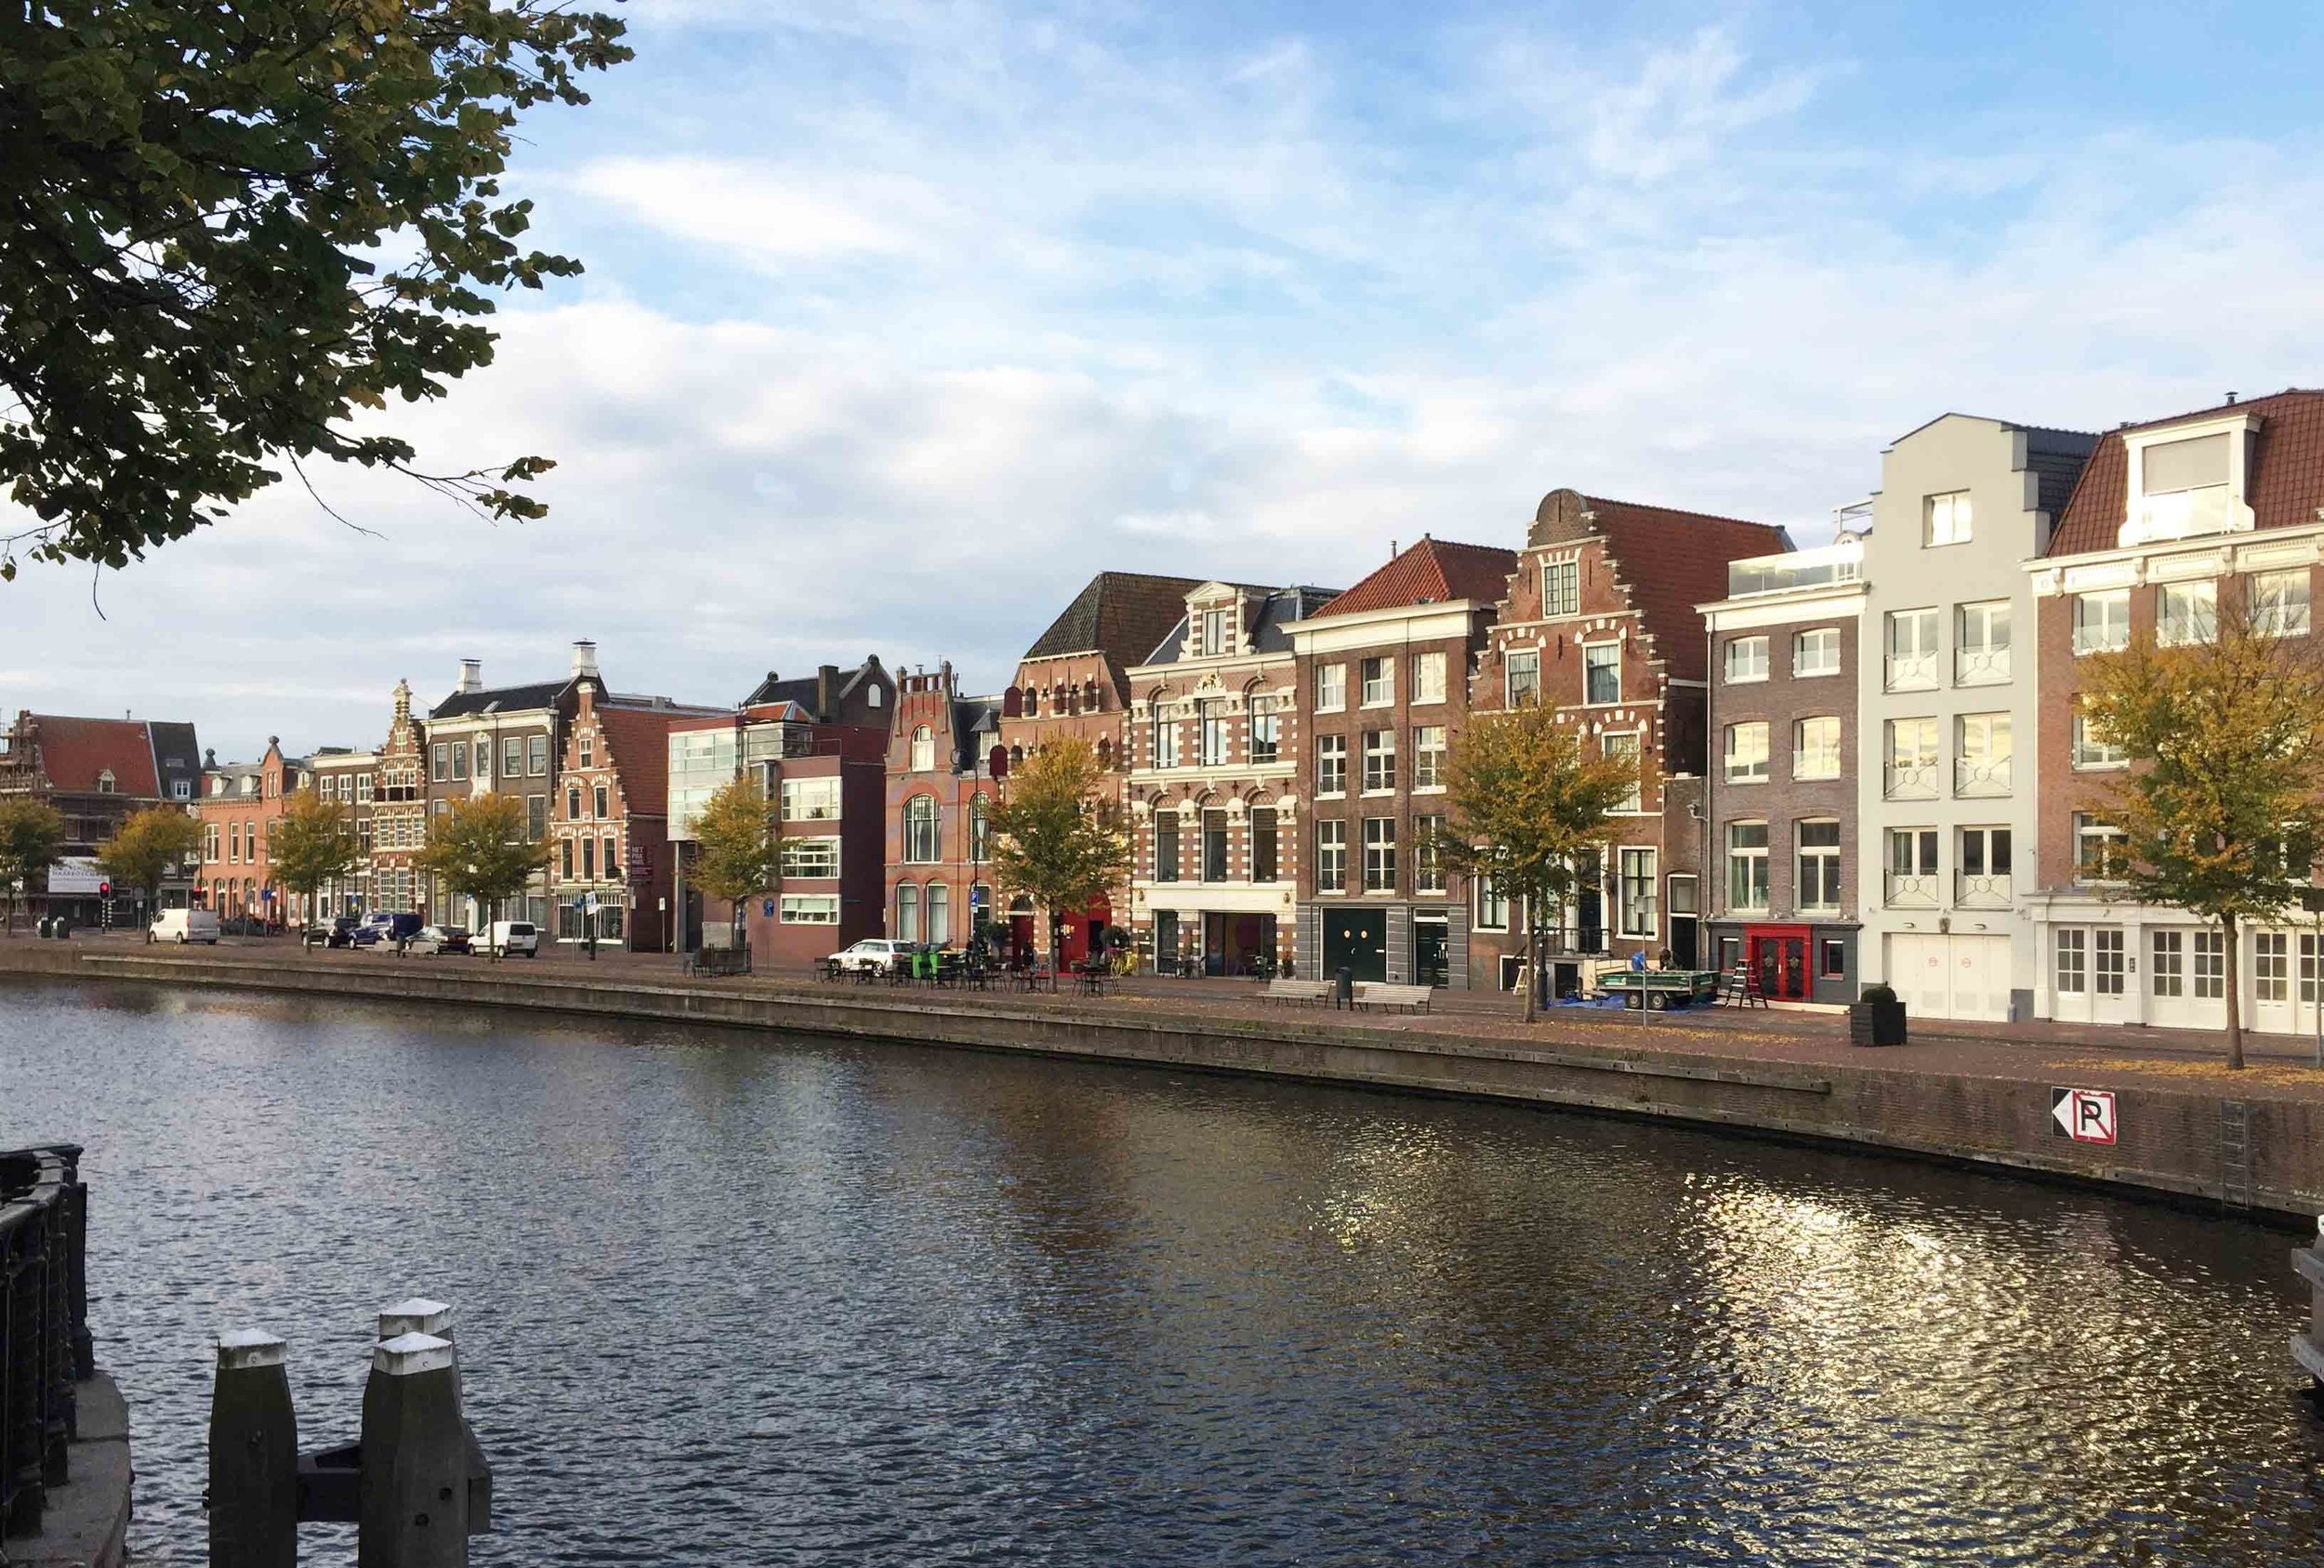 Haarlem - On a nice summerday at the river Spaarne.